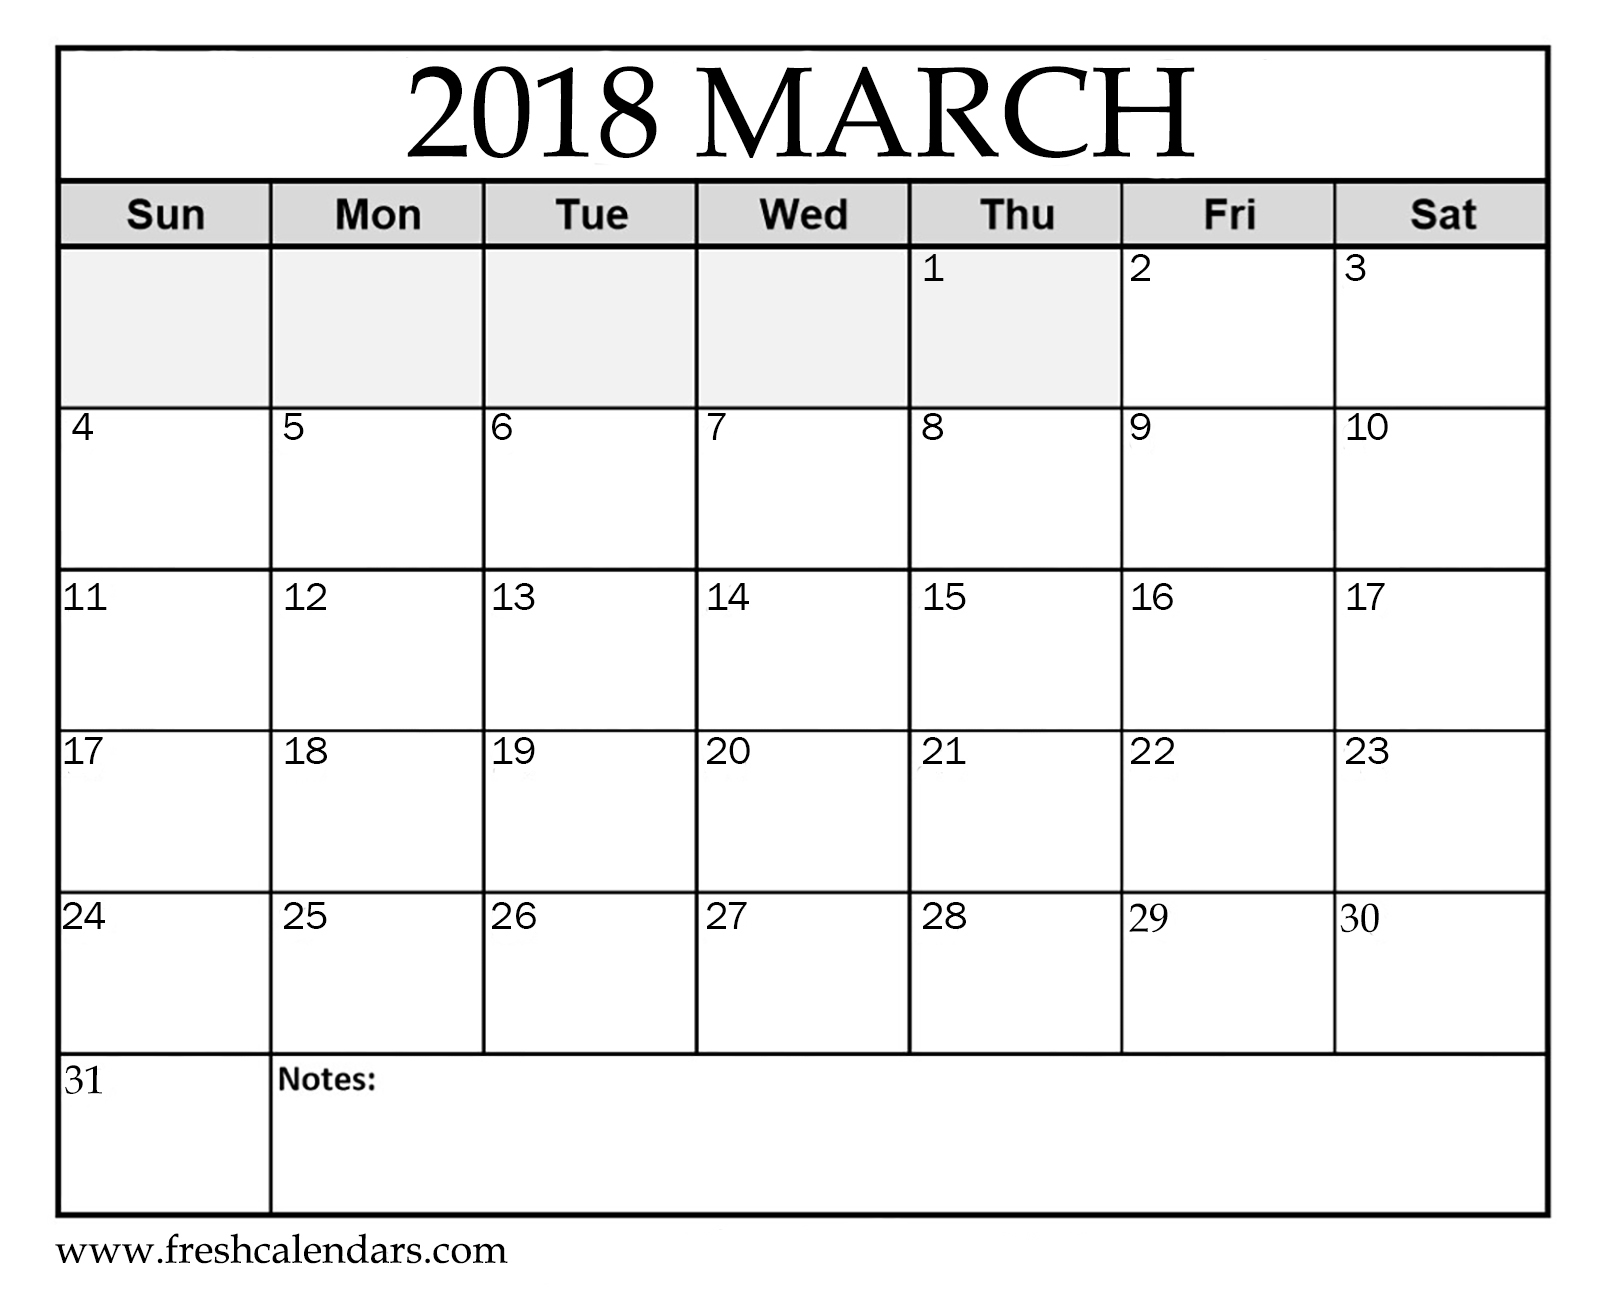 March 2018 Calendar Printable Word Pdf Format With Notes March 2018 Calendar Printable Word Pdf Format With Notes